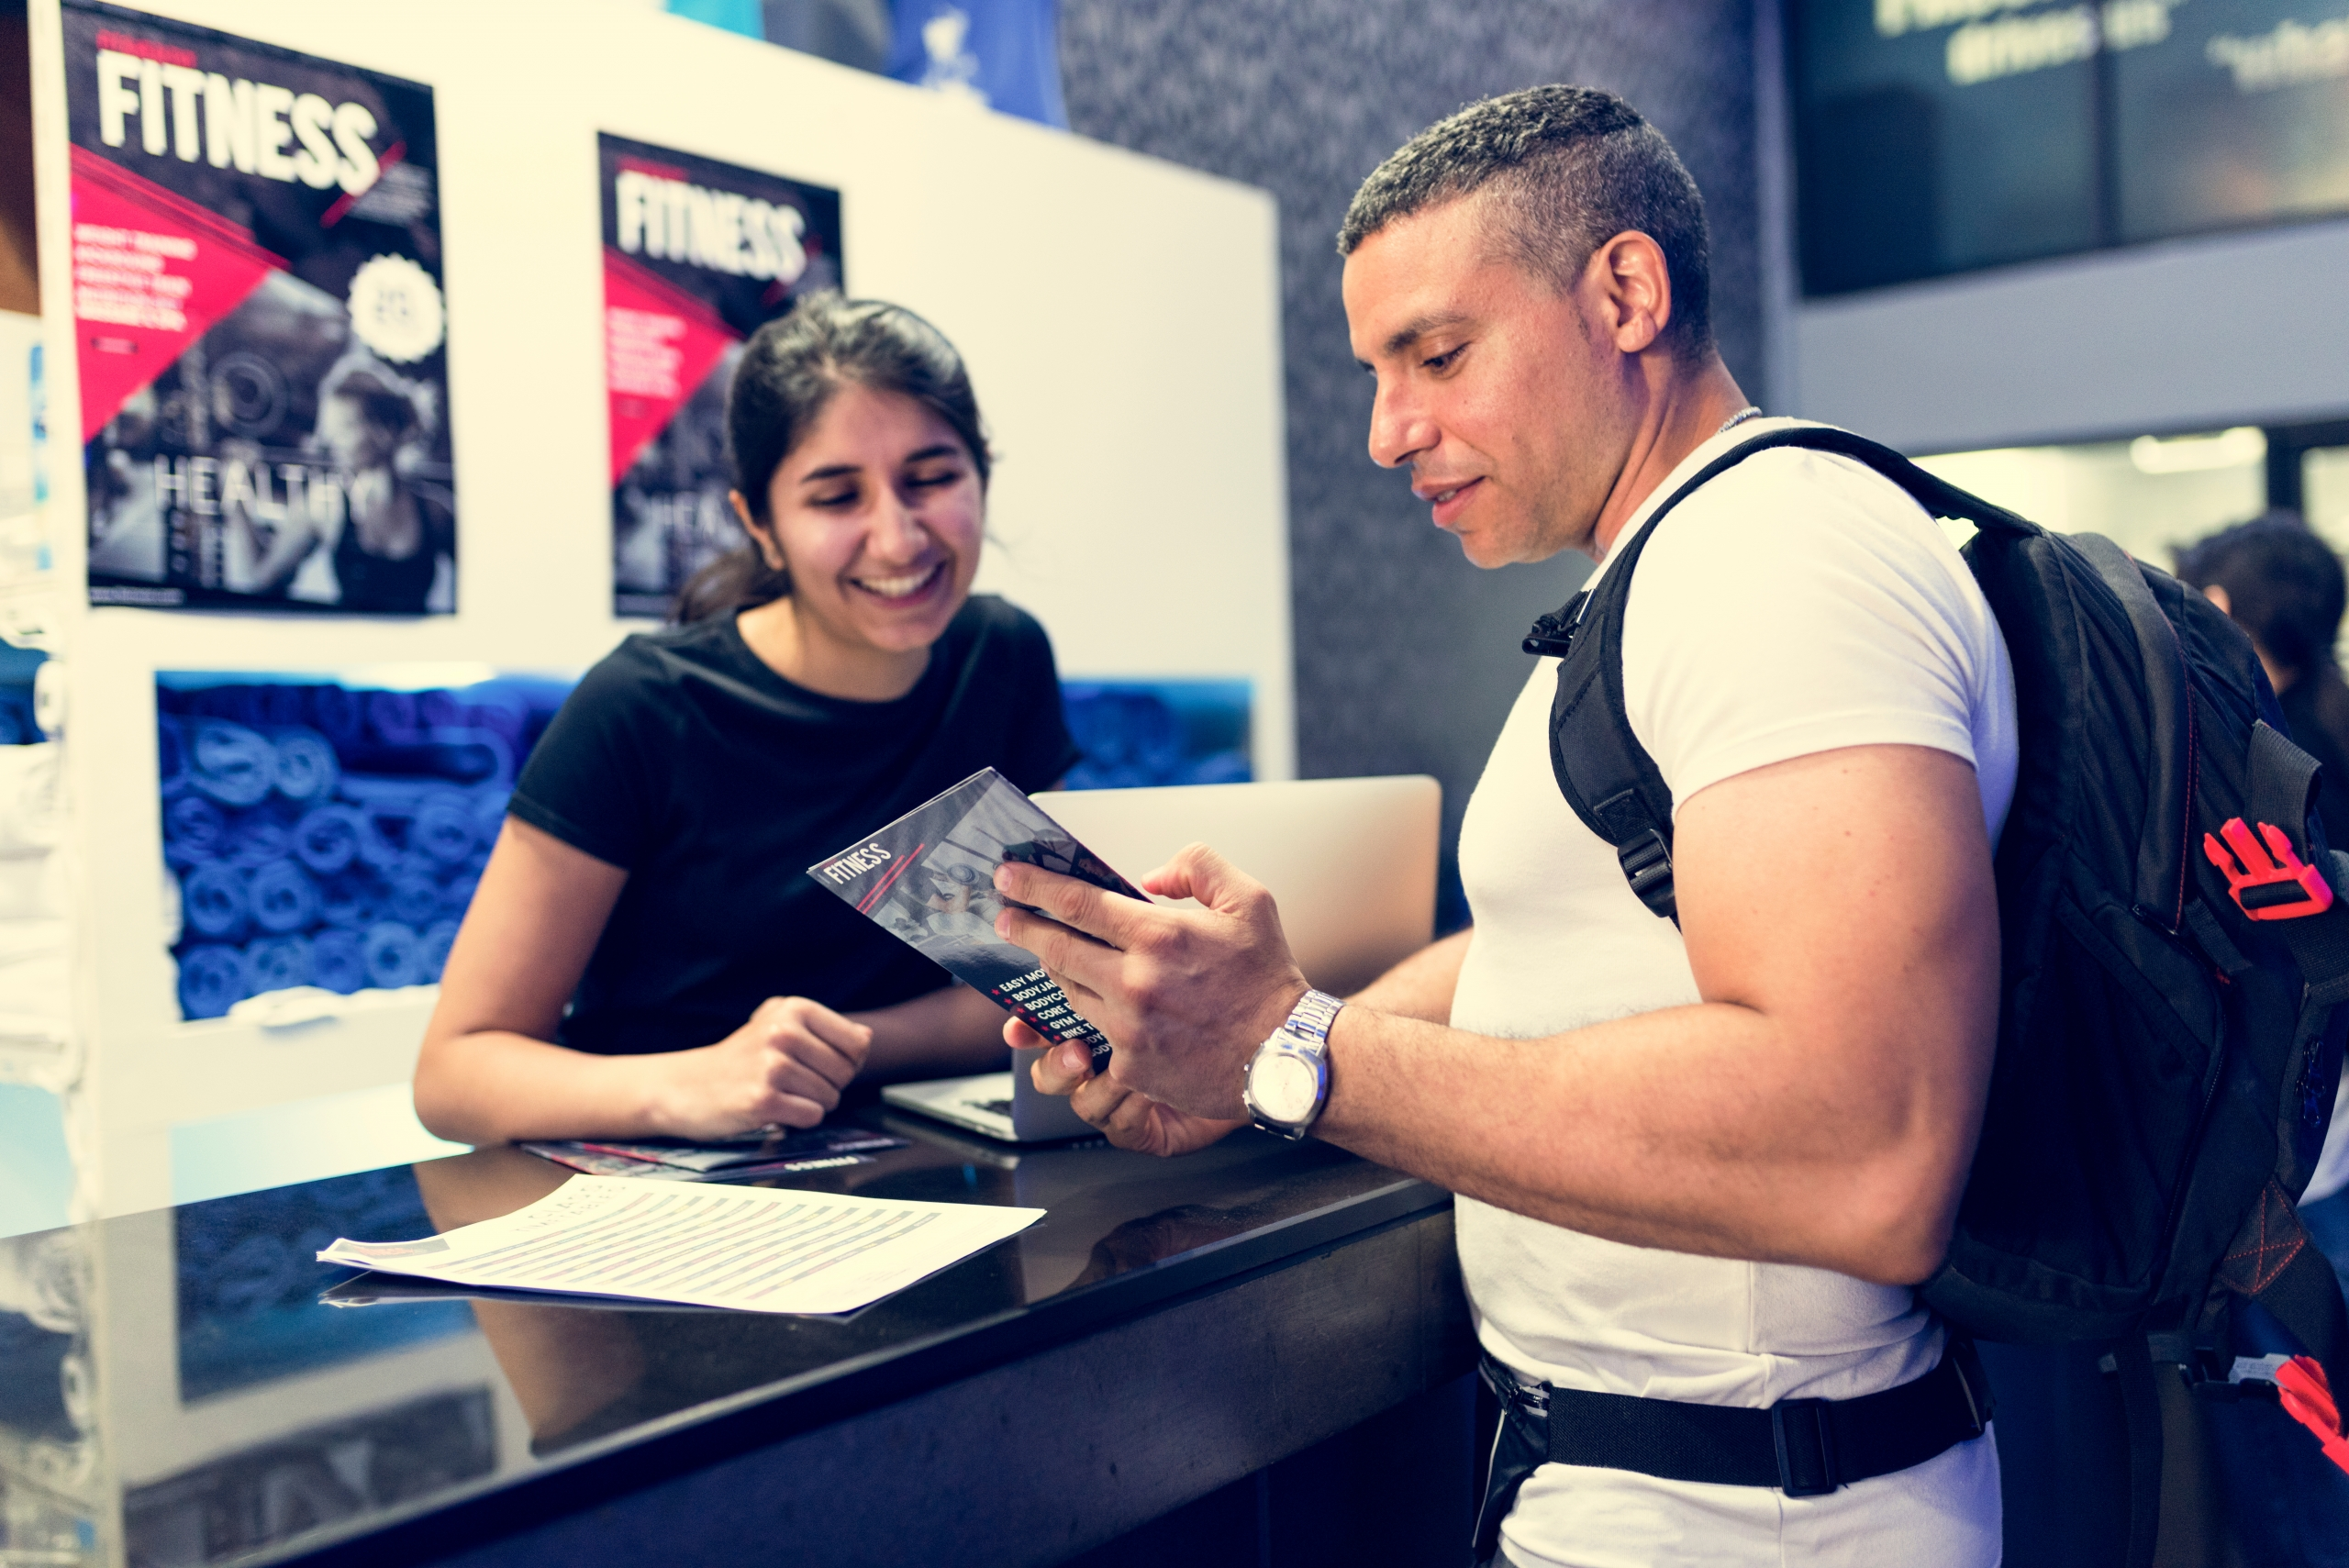 Man And Woman Discussing Membership At A Gym - Business Solutions